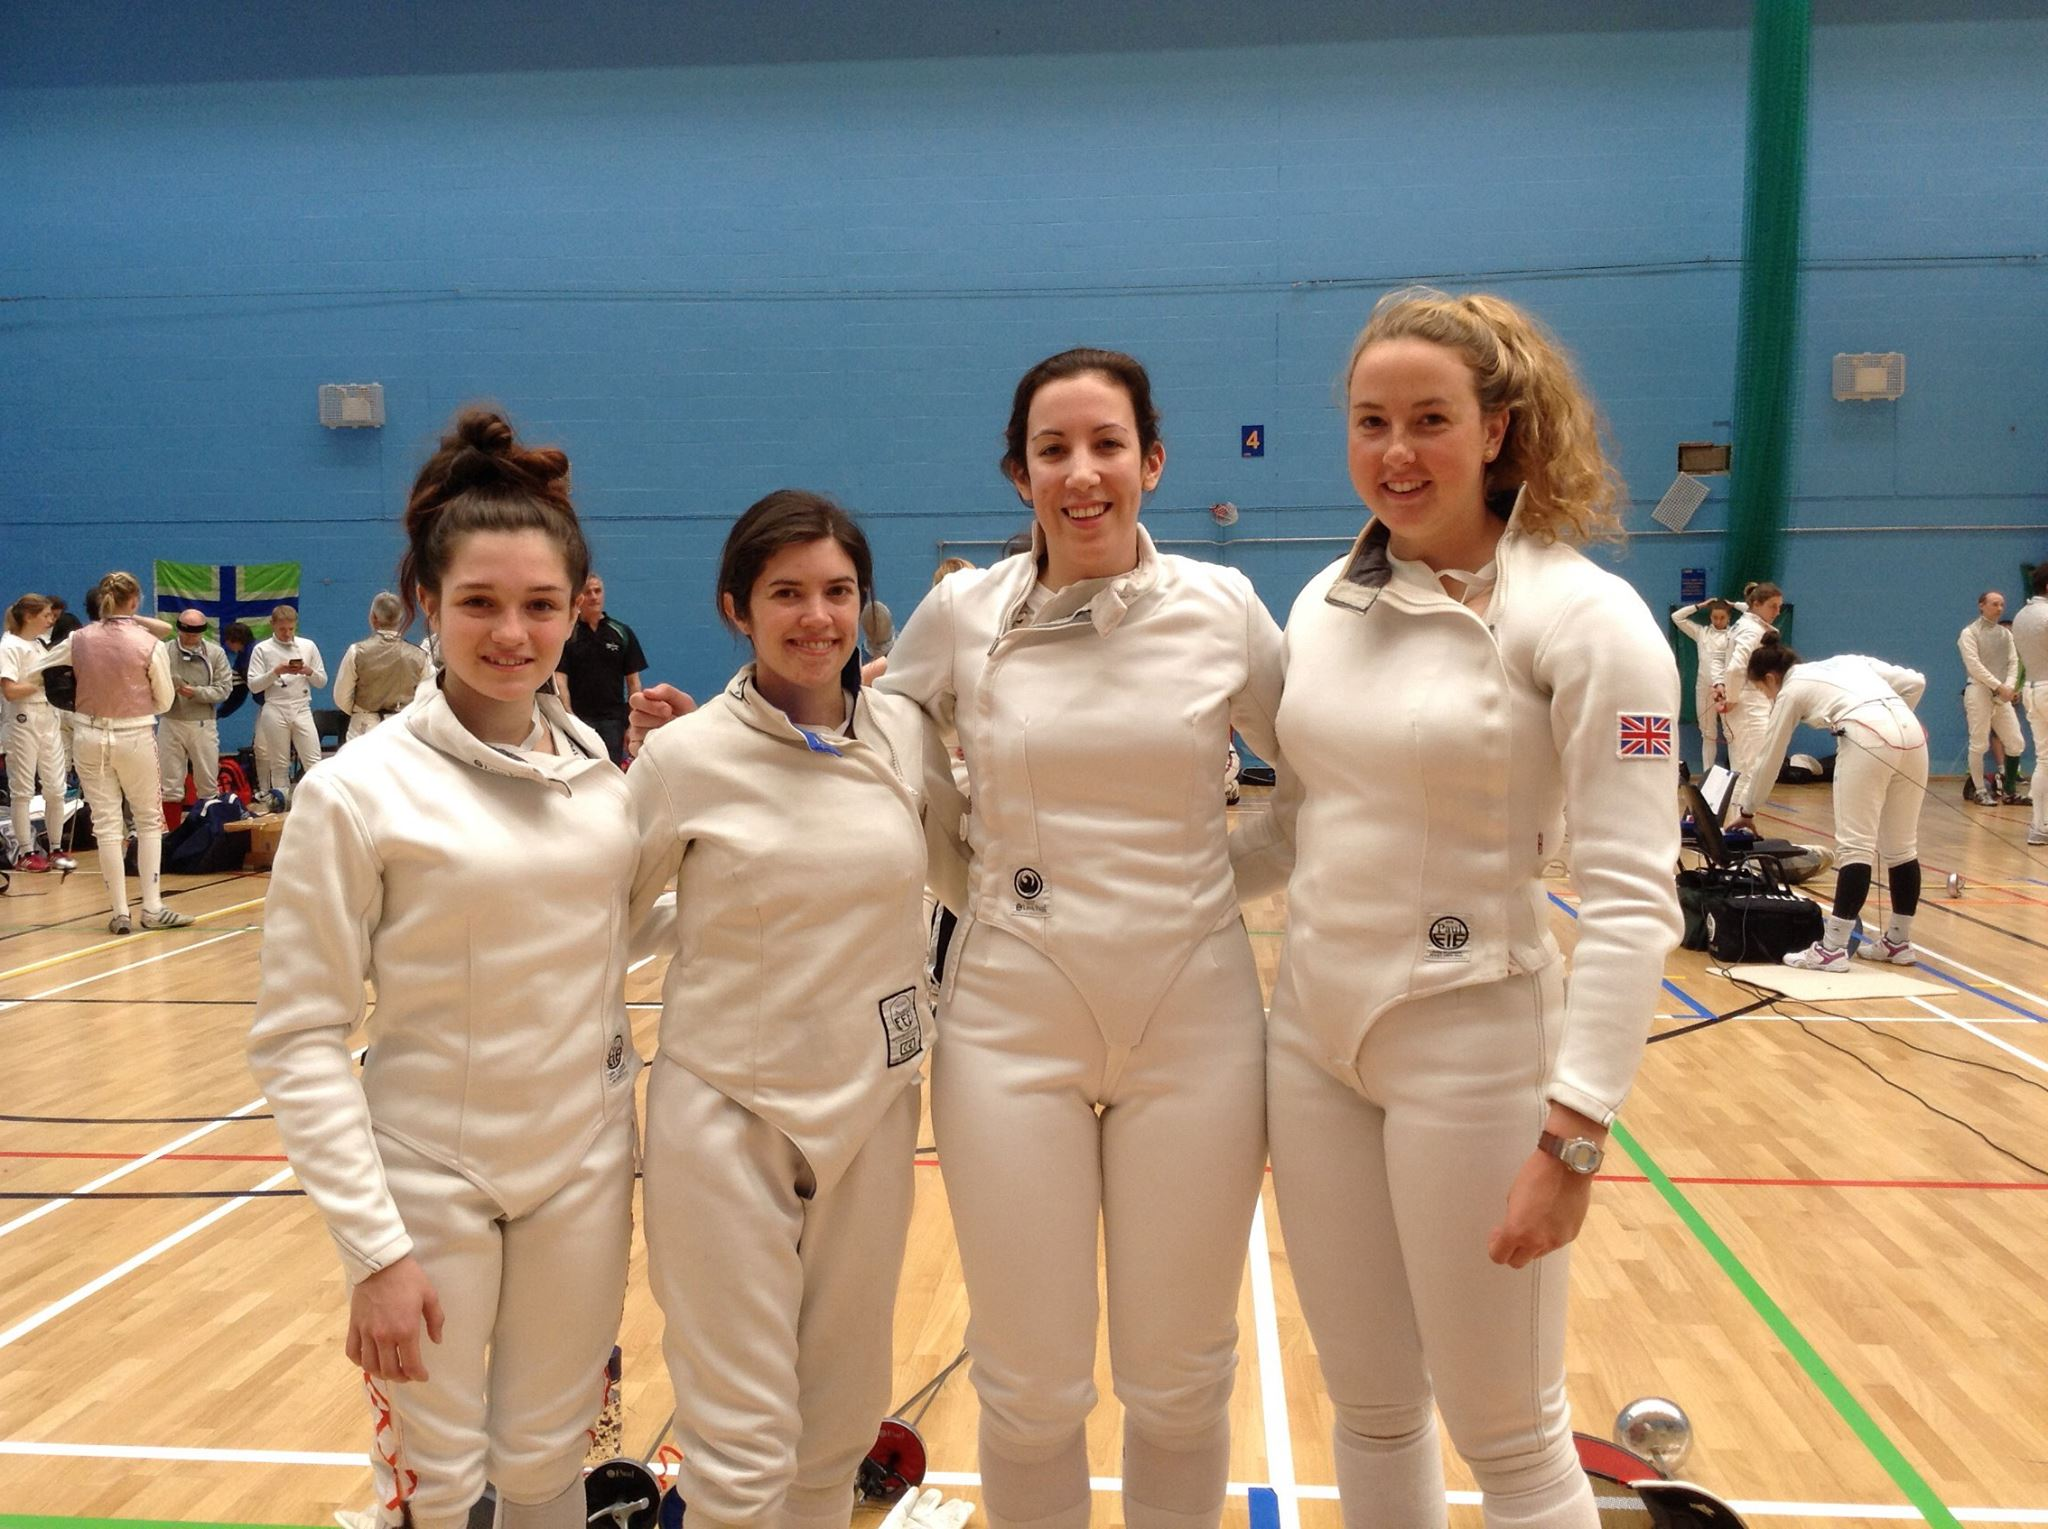 Excalibur Women's Epee Team 2015